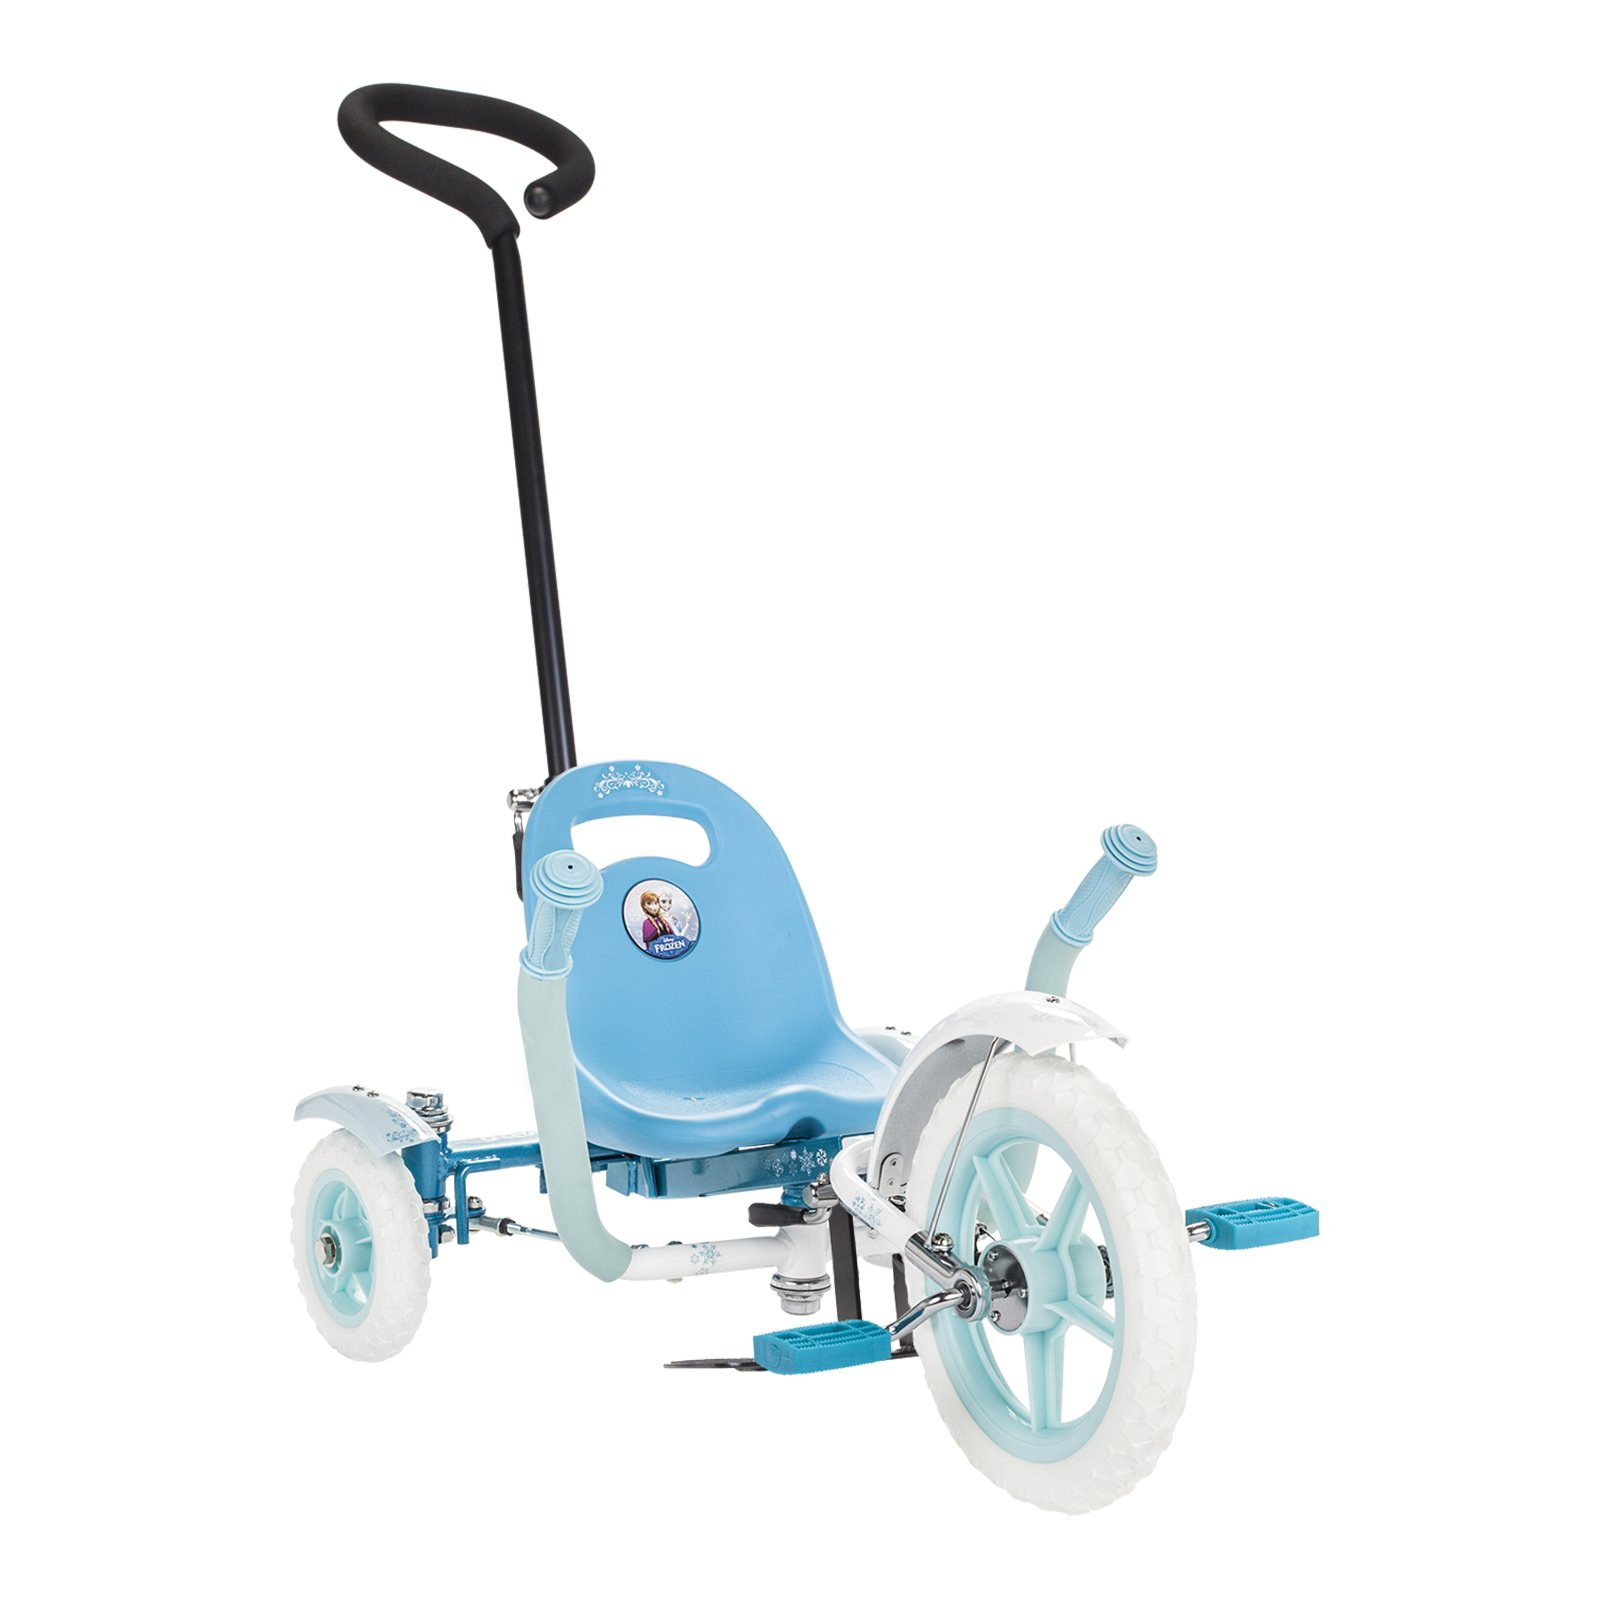 Mobo Total Tot Disney Frozen: The Roll-to-Ride Three Wheeled Cruiser